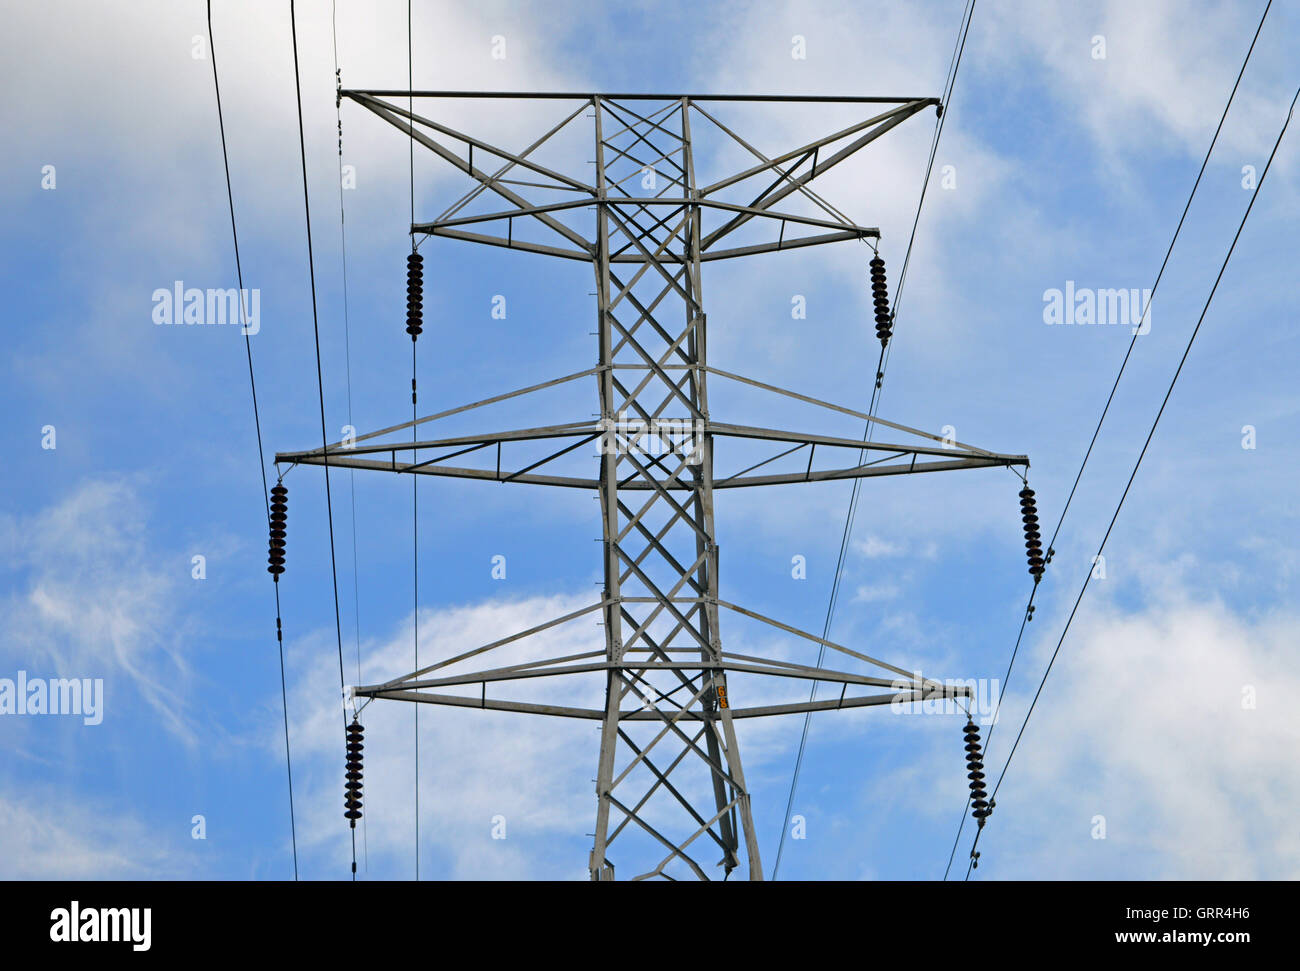 A tower for high tension power lines in Milford, Ohio, US on June 3, 2016 - Stock Image